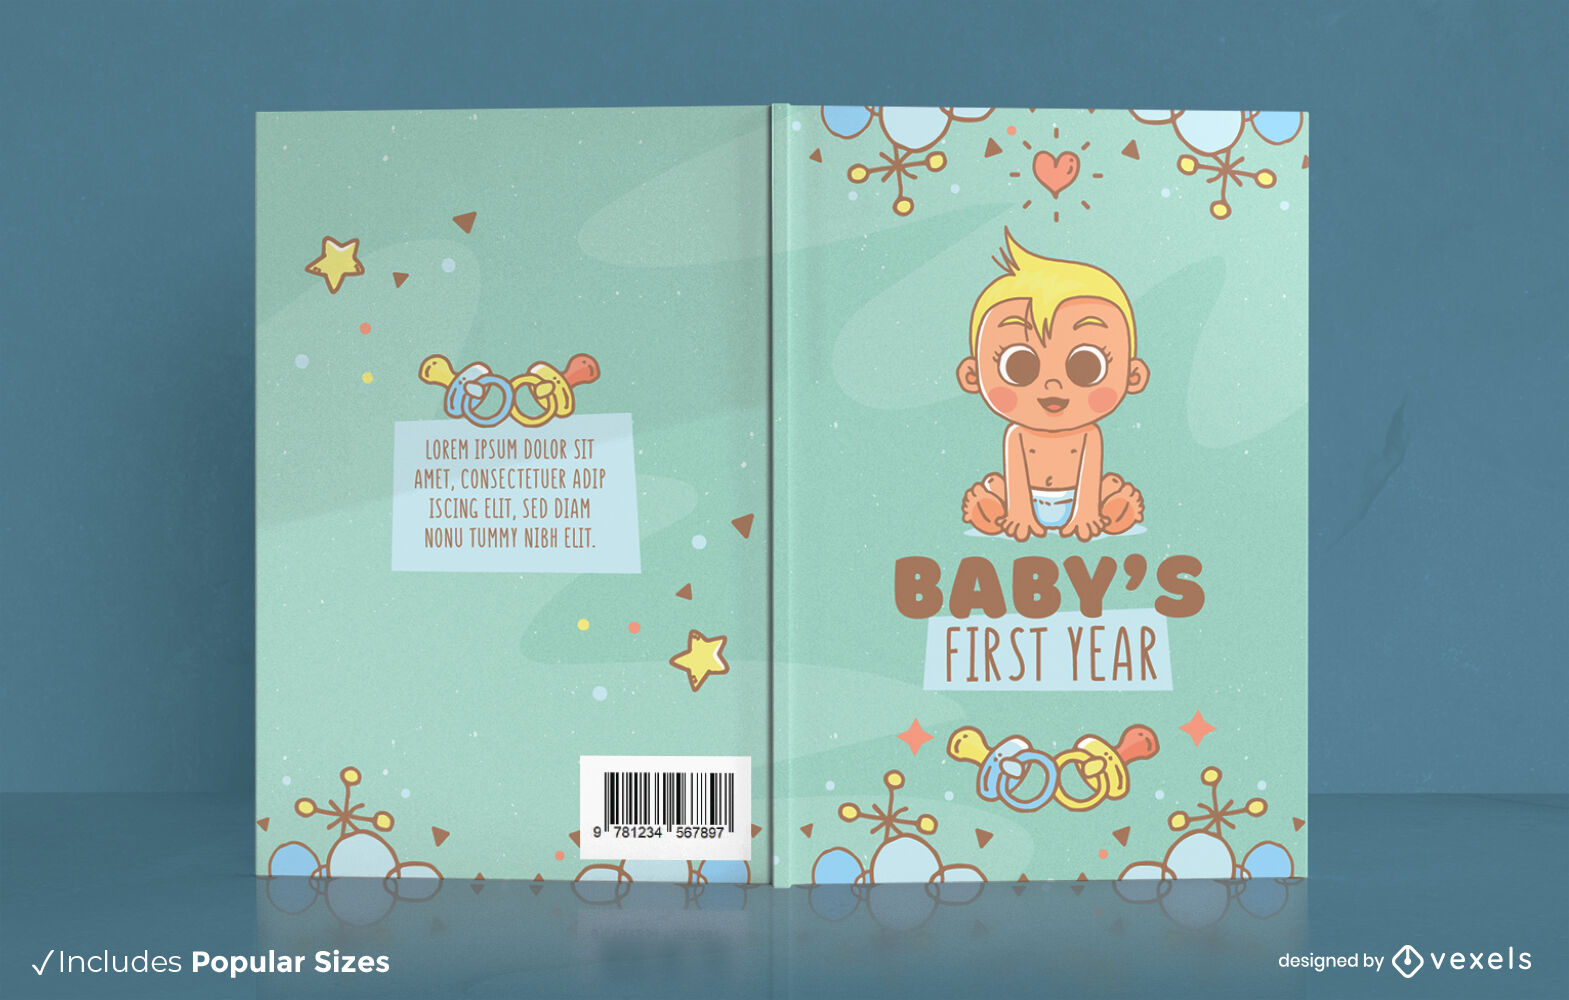 Baby first year cute book cover design